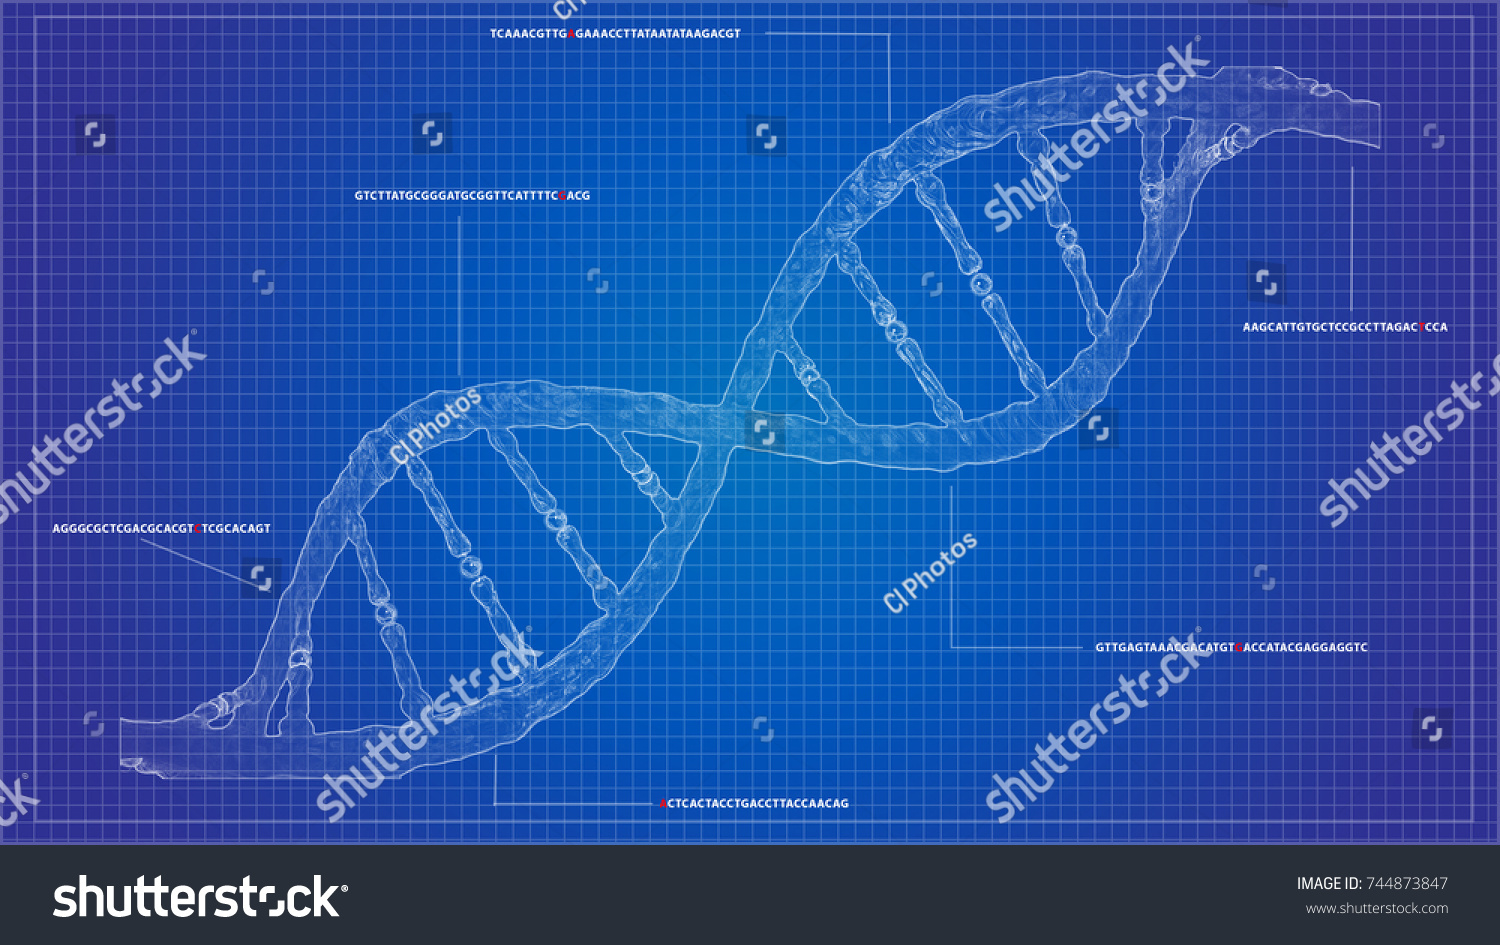 Dna sequencing blueprint rna sequencing dna stock illustration dna sequencing blueprint rna sequencing dna computational models genome helix background gene crispr helix malvernweather Choice Image